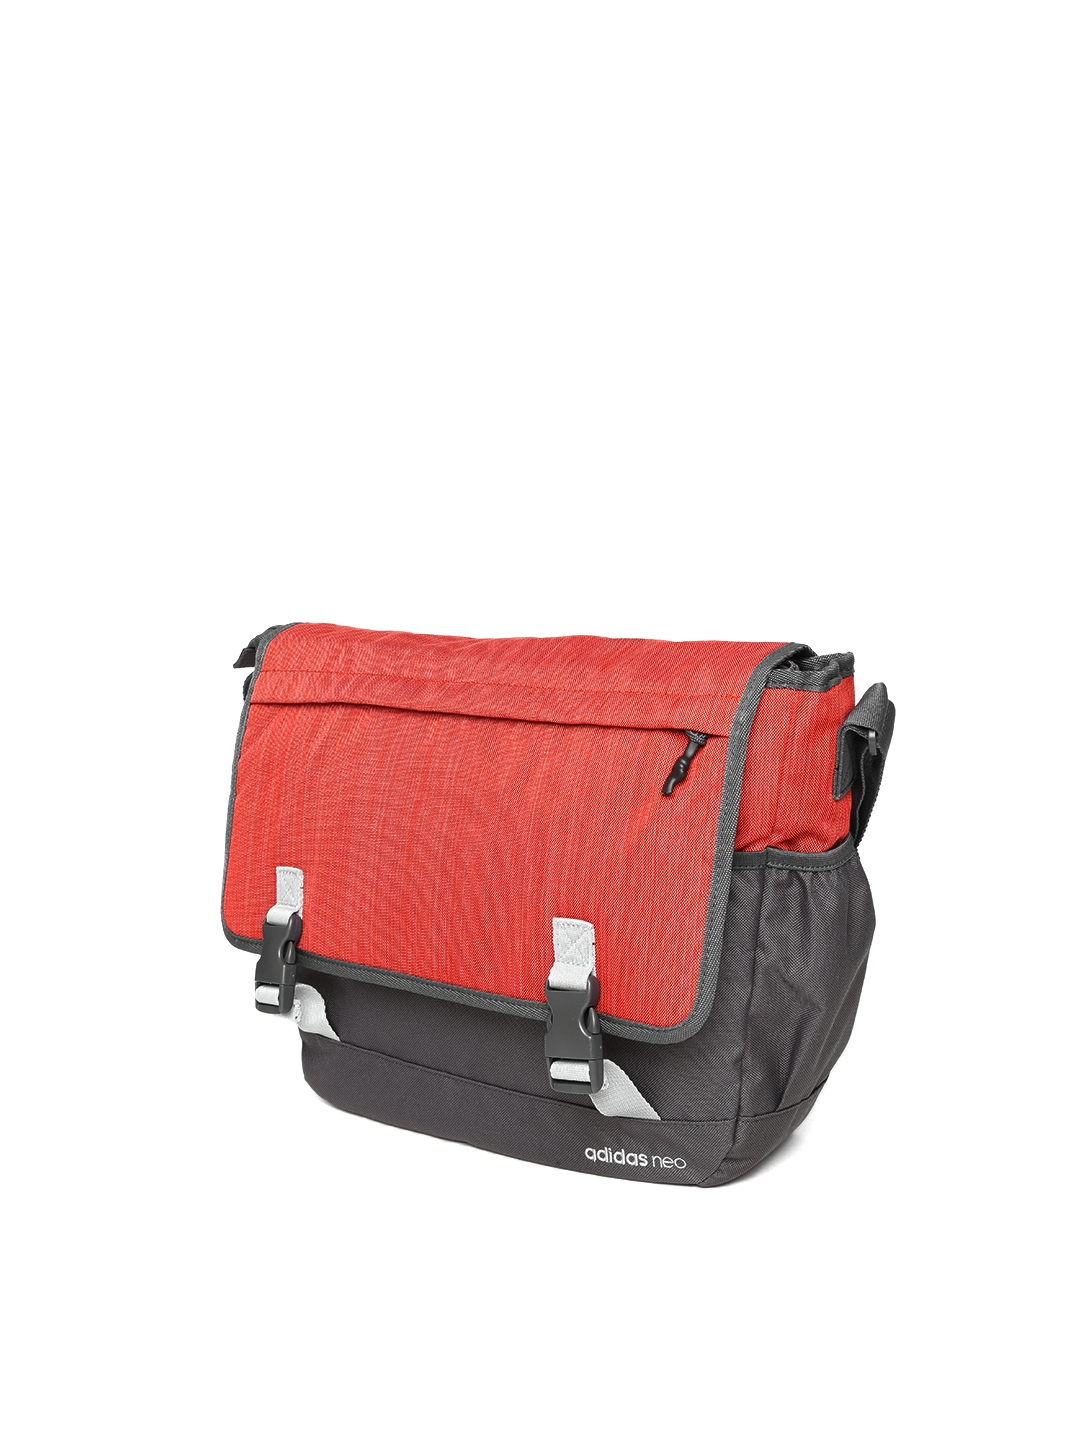 Buy ADIDAS NEO Men Rust Orange   Grey Trendy Messenger Bag ... 1c1f4195a405f